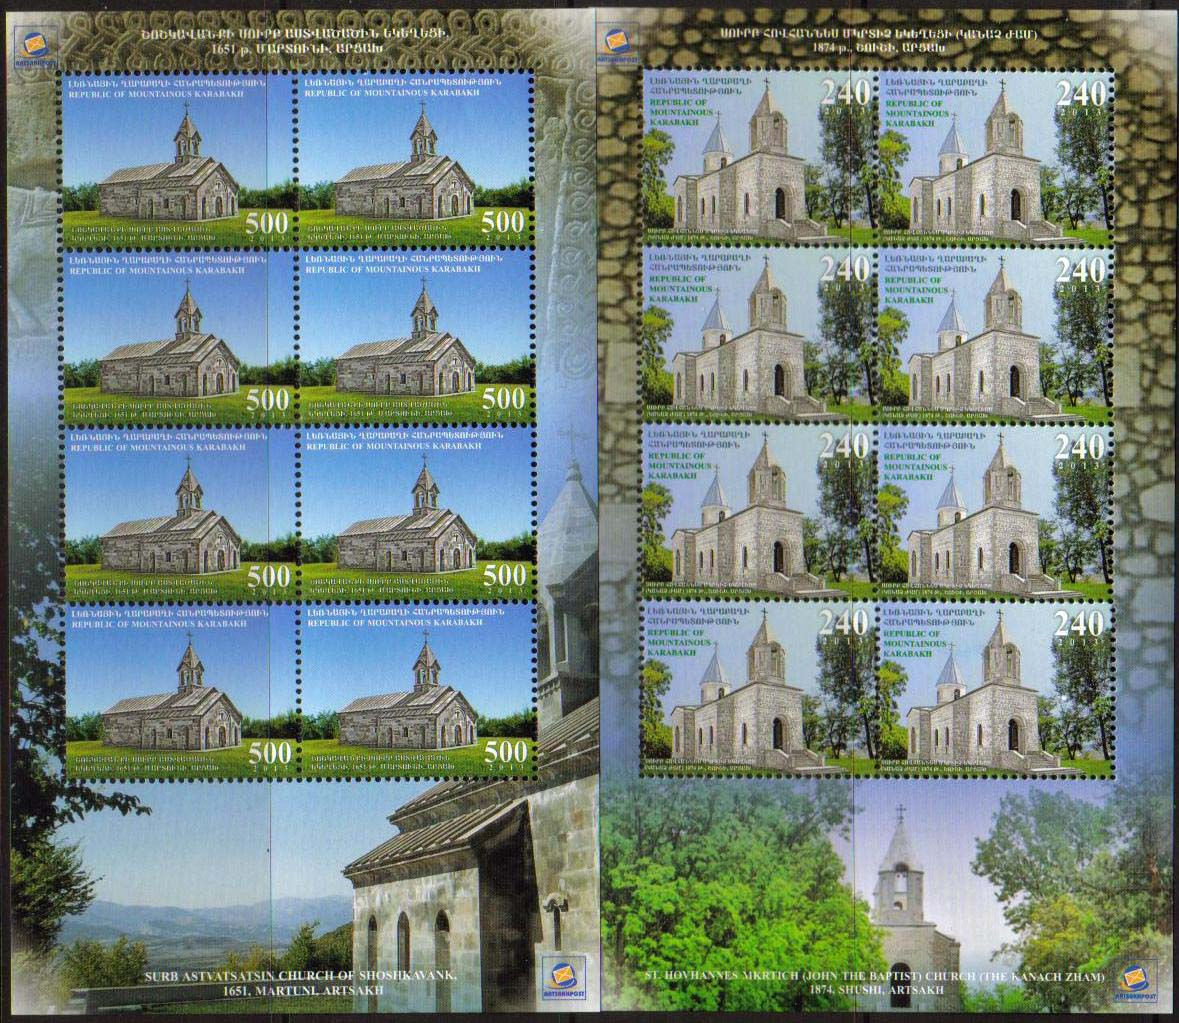 <Font 3-086><br>Nagorno Karabakh #86-87, 2013 issue, Artsakh Churches<br>Commemorative sheets of 8 with church images<br><a href=&quot;/images/KA-86-87-Sheet.jpg&quot;>   <font color=green><b>View the image</b></a></font><br>